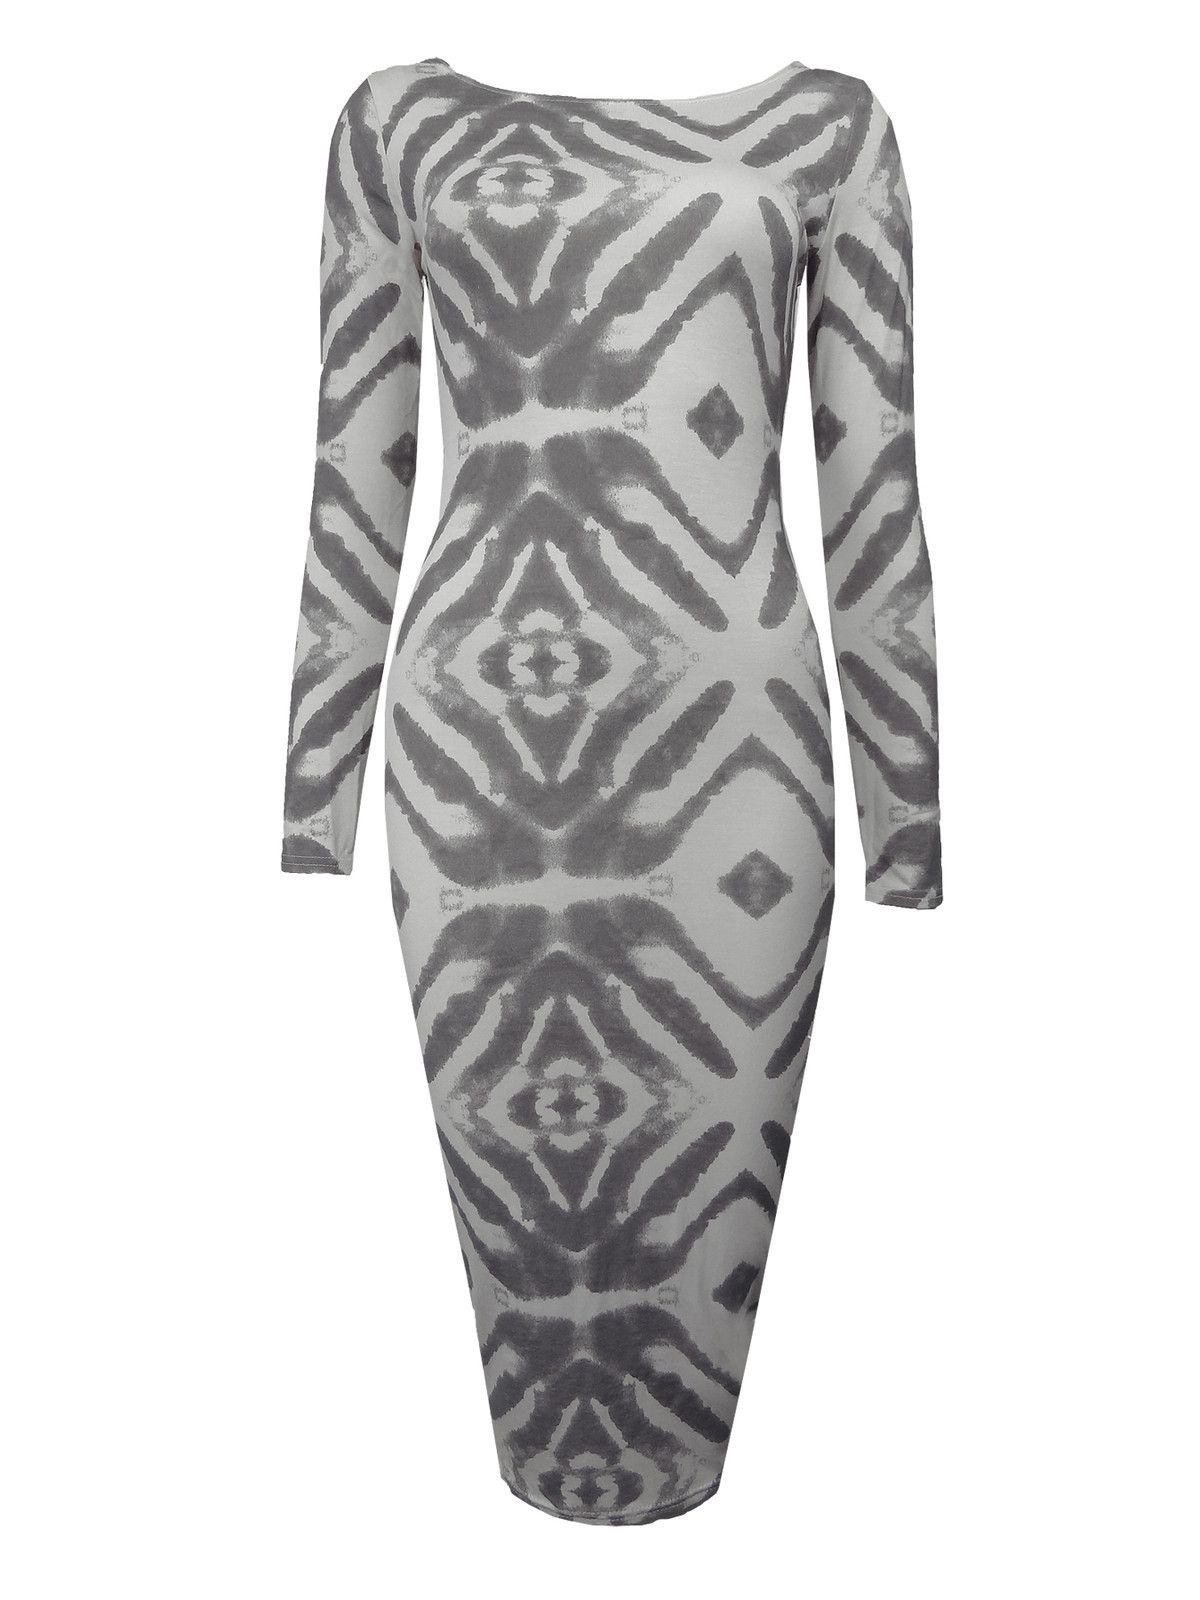 Long Sleeved Tie Dye Midi Dress  £8.99!  www.exciteclothing.com